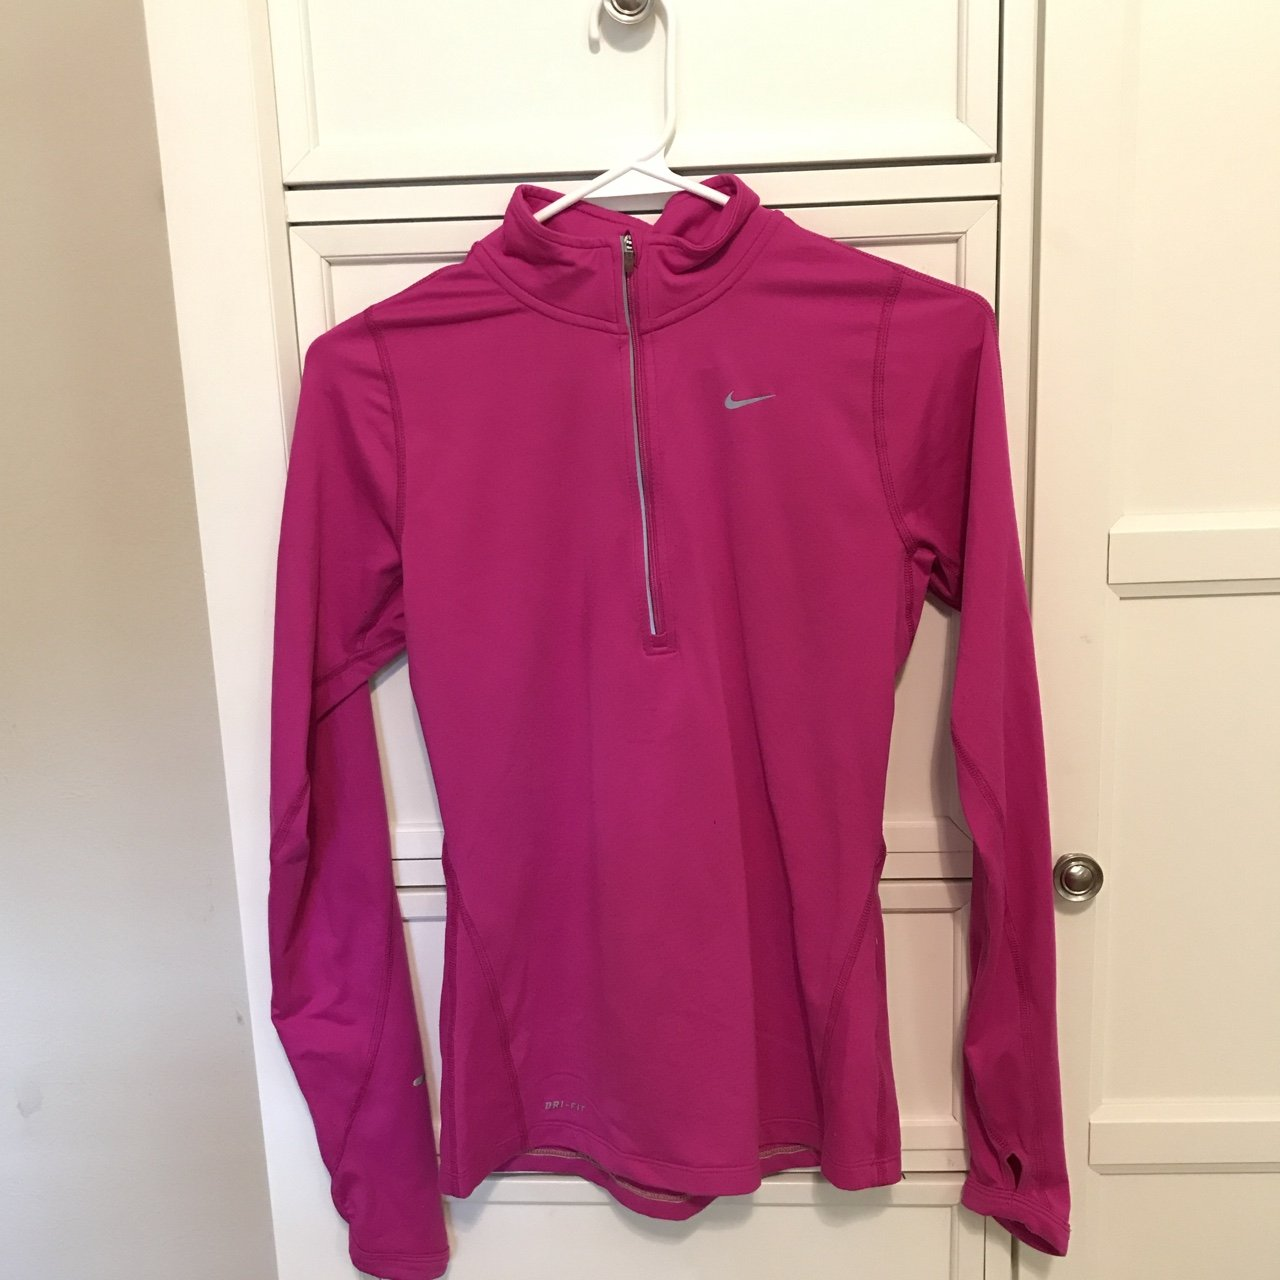 87736a76b9af Hot pink lightweight dry fit running jacket by Nike worn Lil - Depop